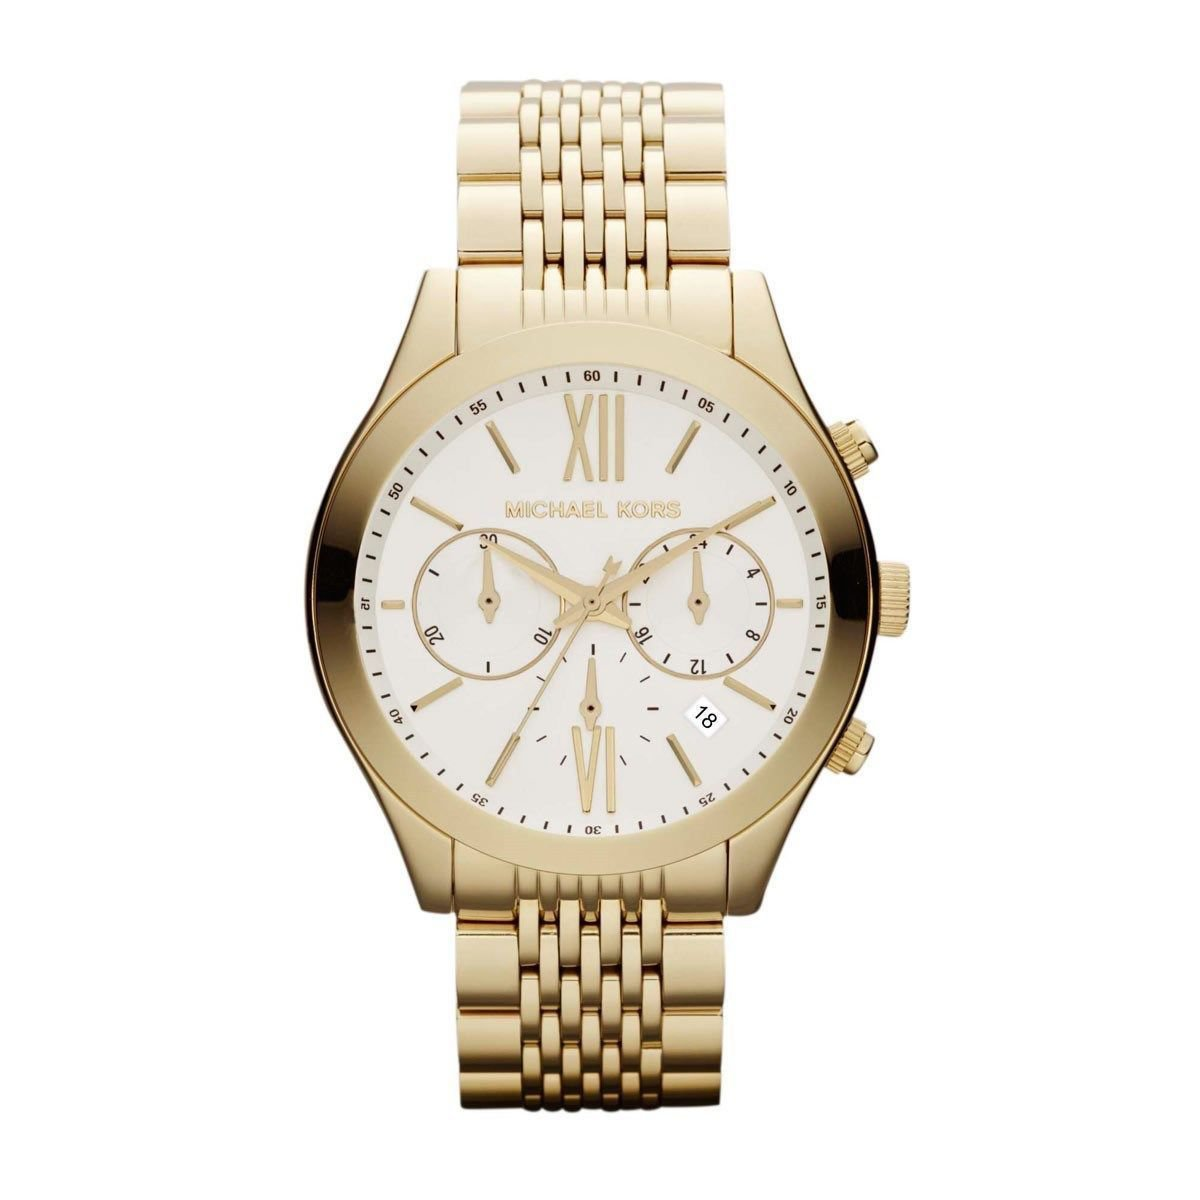 Michael Kors MK5762 Women's Brookton Gold Tone Stainless Steel Chronograph Watch